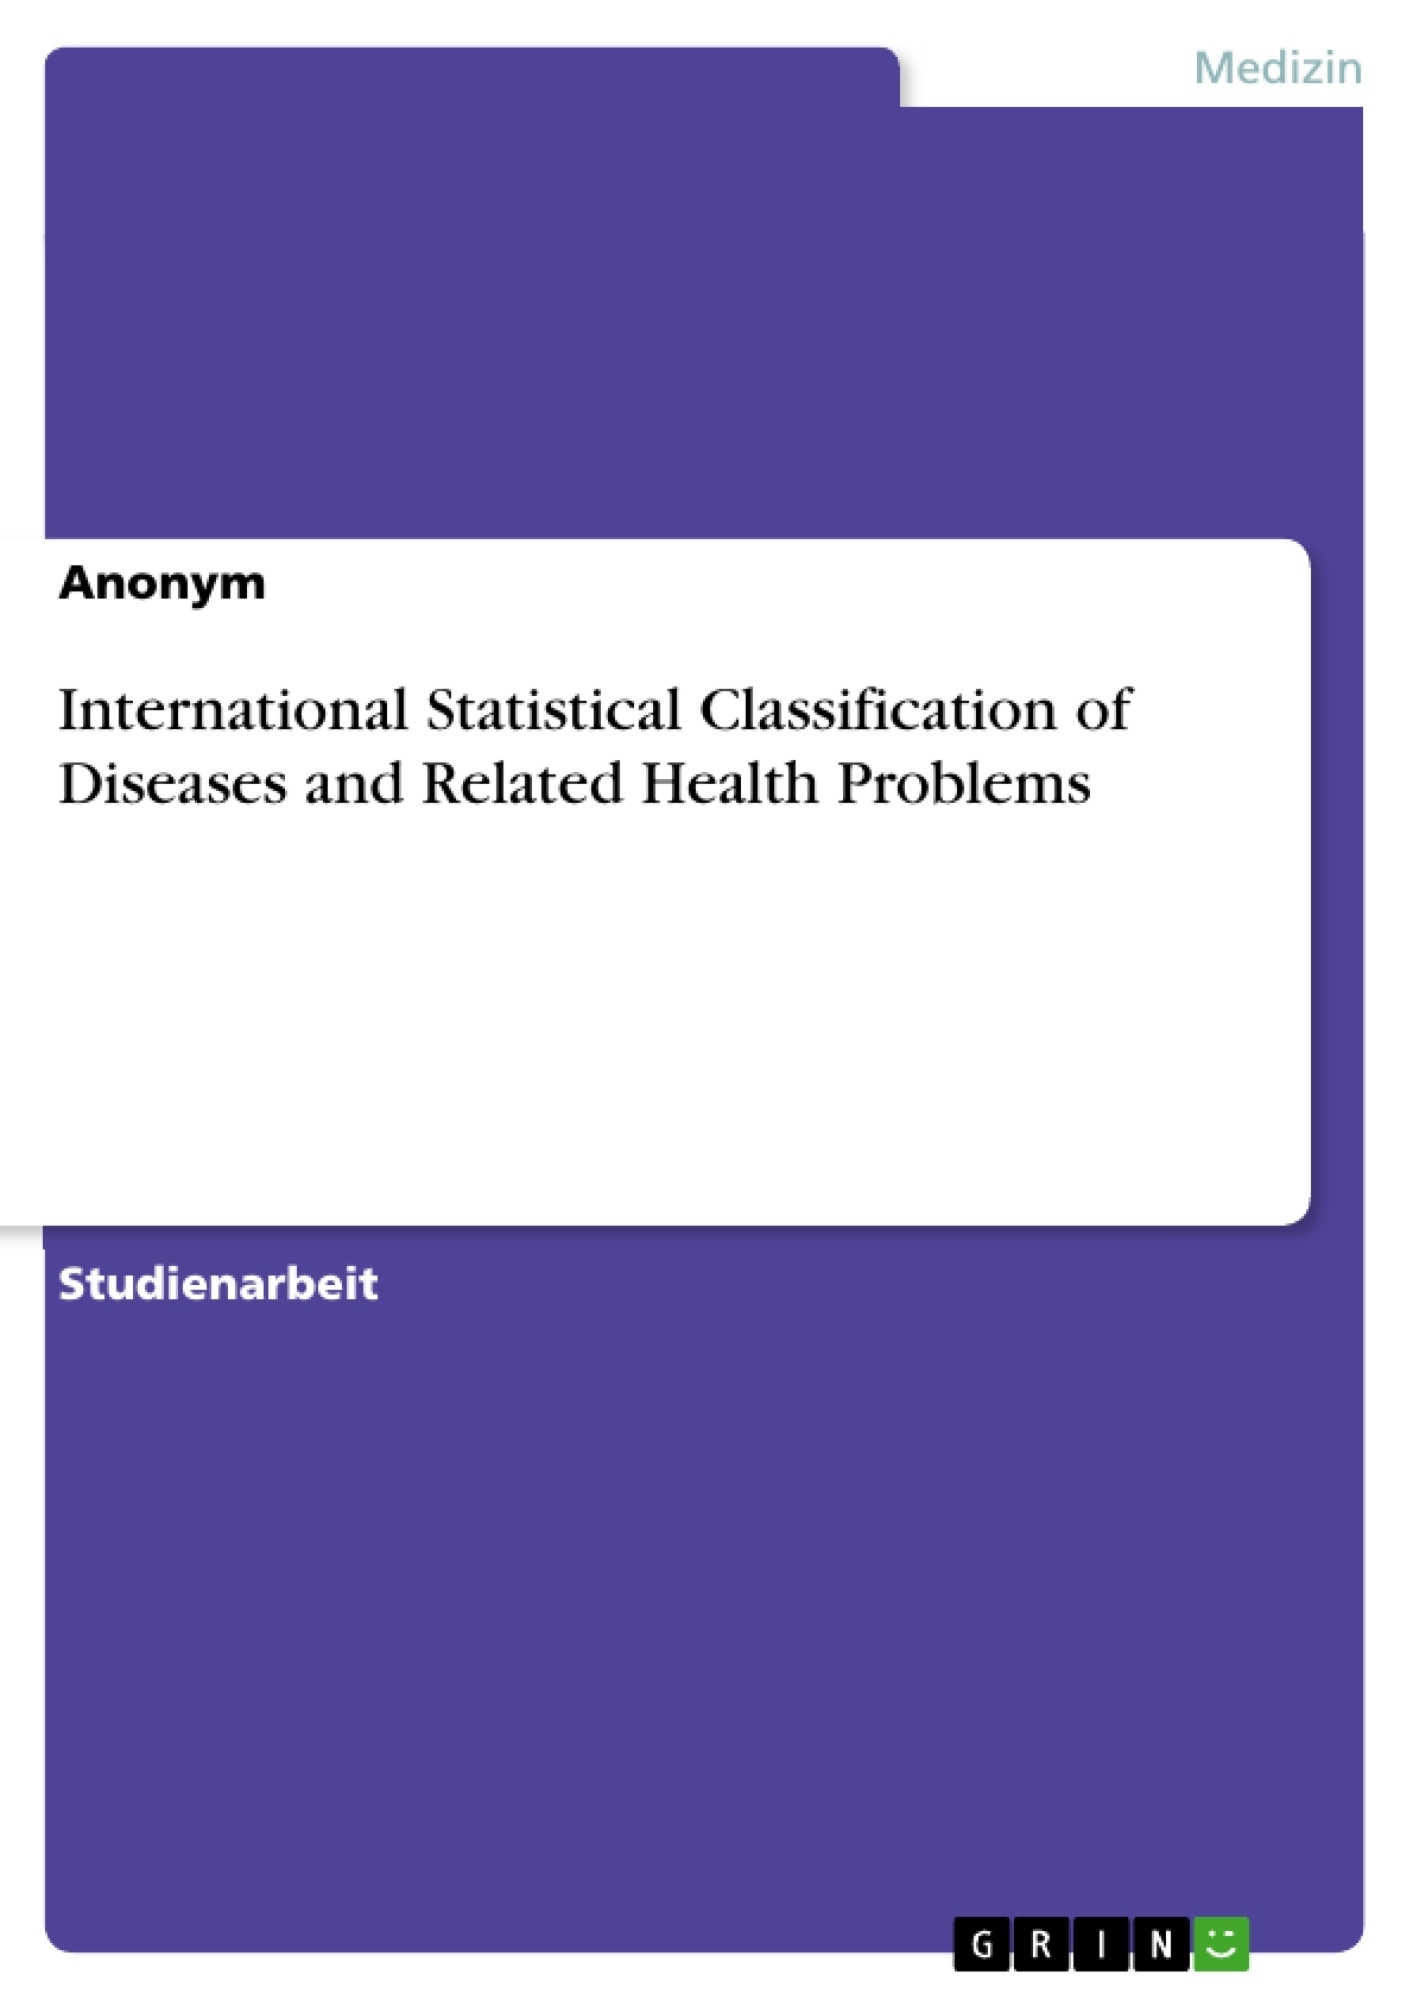 Titel: International Statistical Classification of Diseases and Related Health Problems